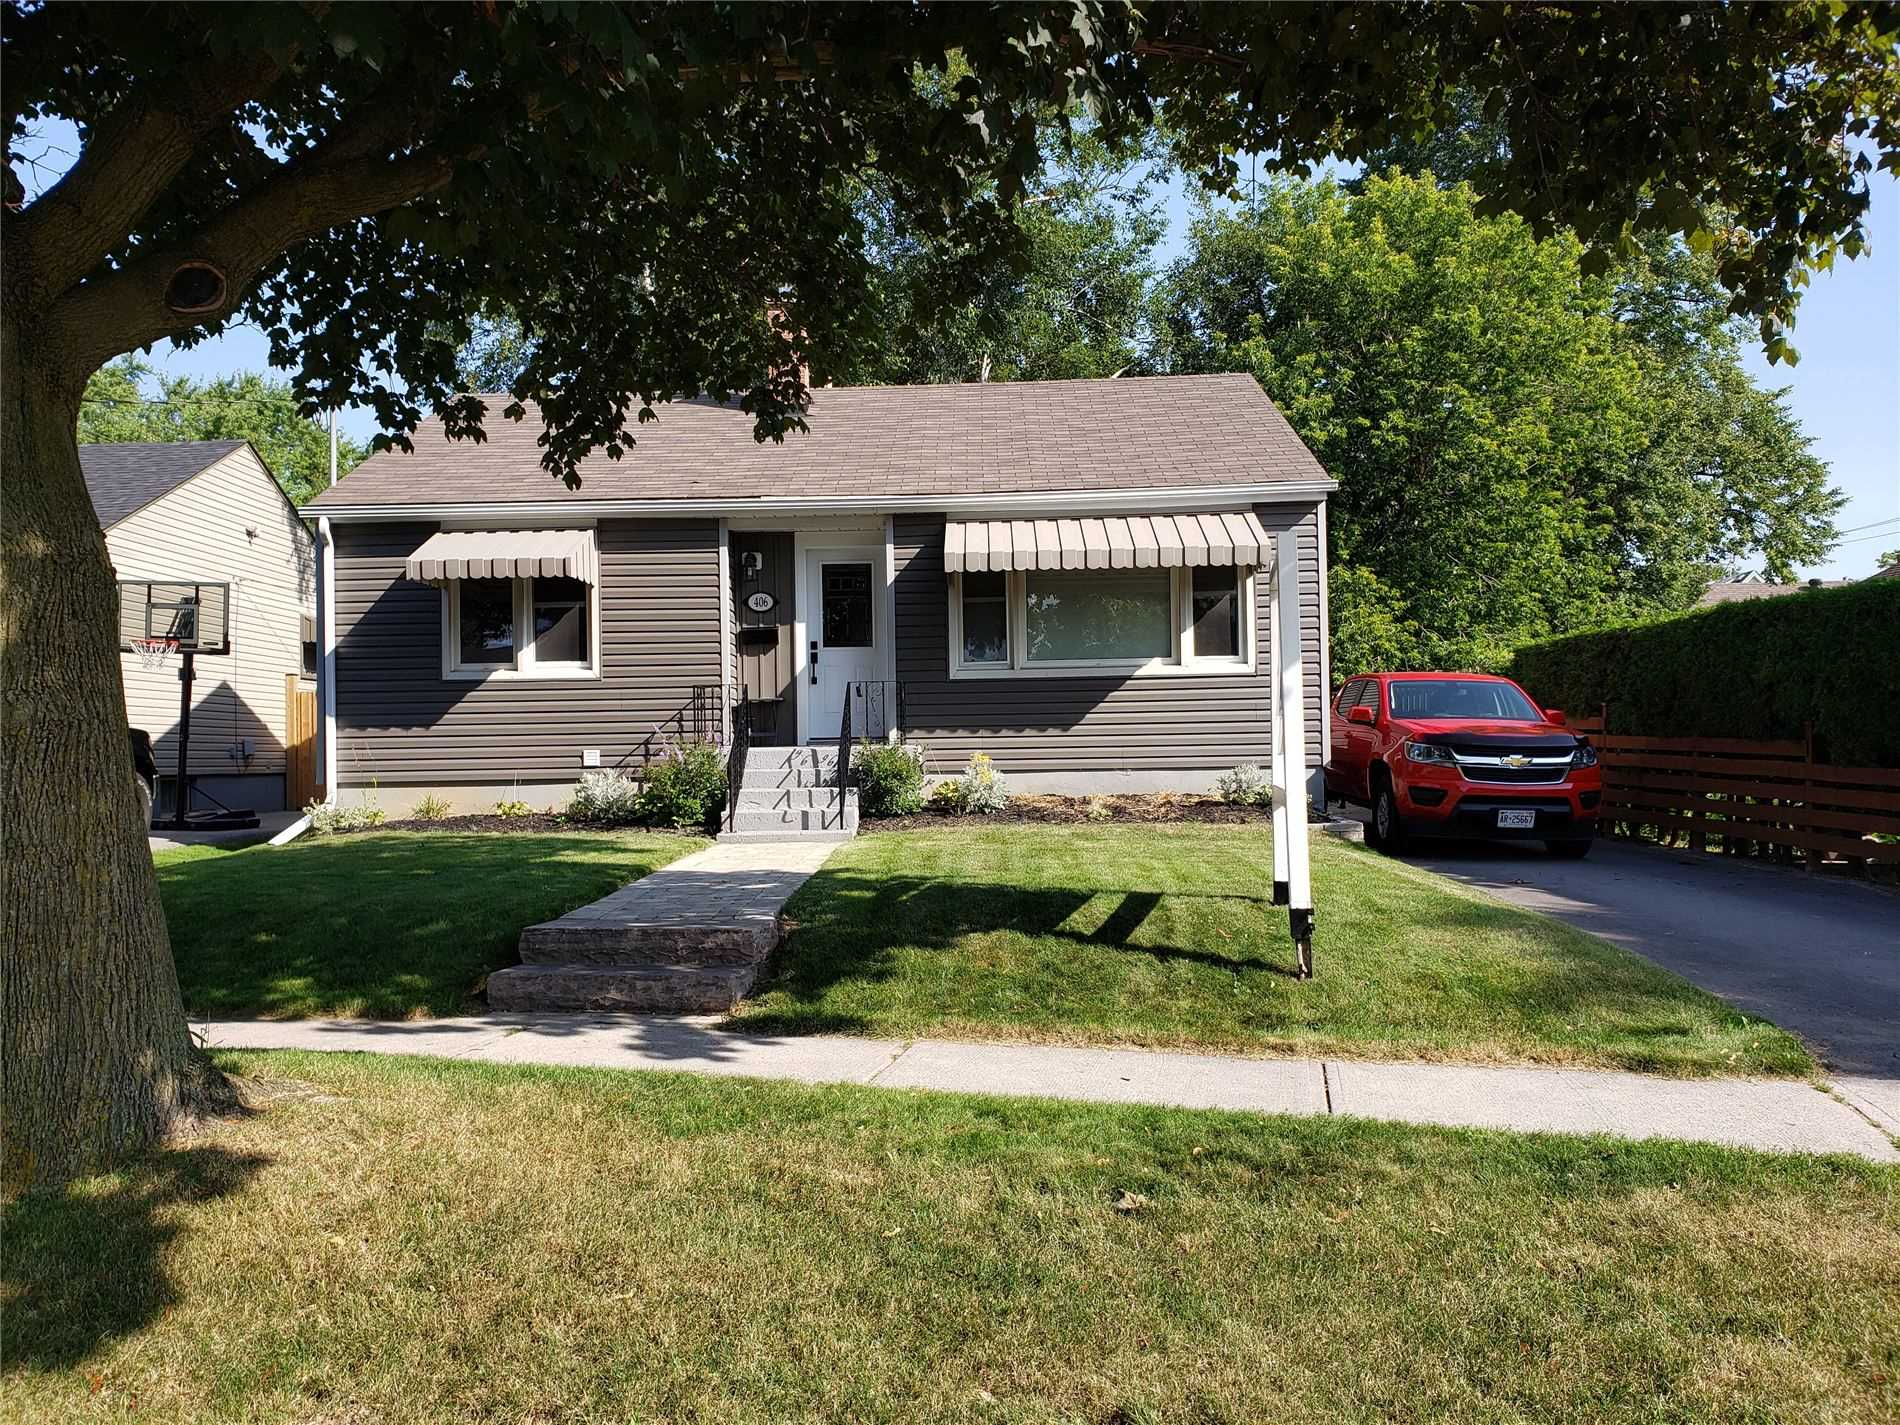 406 Gliddon Ave' Oshawa' Ontario L1H1Z7 <br>MLS® Number: E4567748<br>For Sale: $464'900<br>Bedrooms: 2